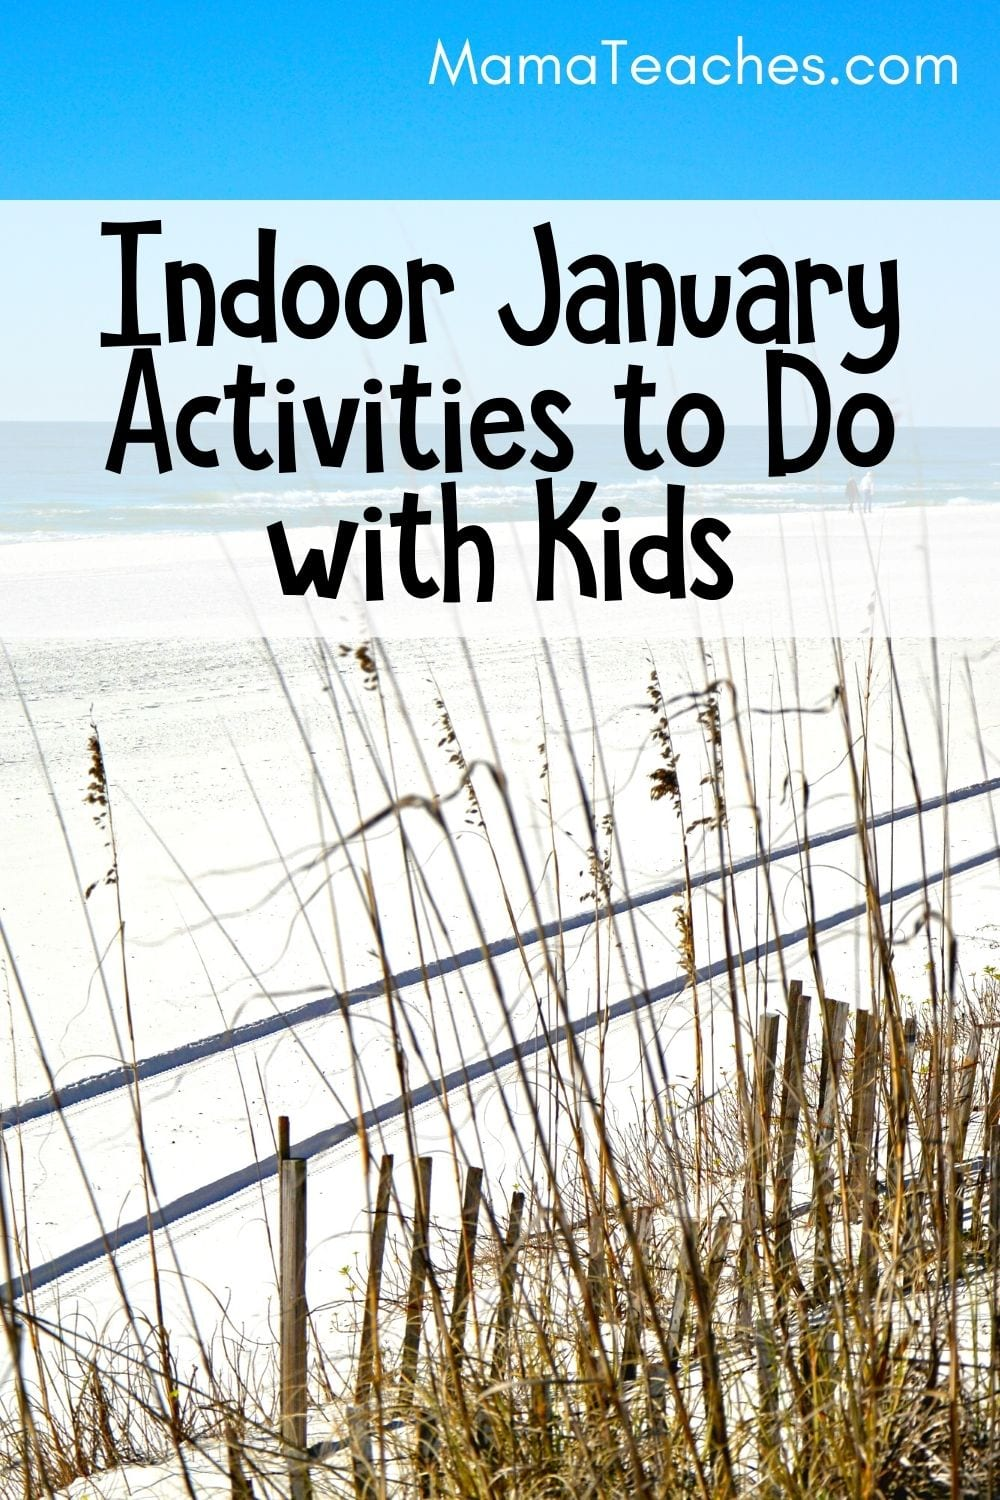 Indoor January Activities for Do with Kids